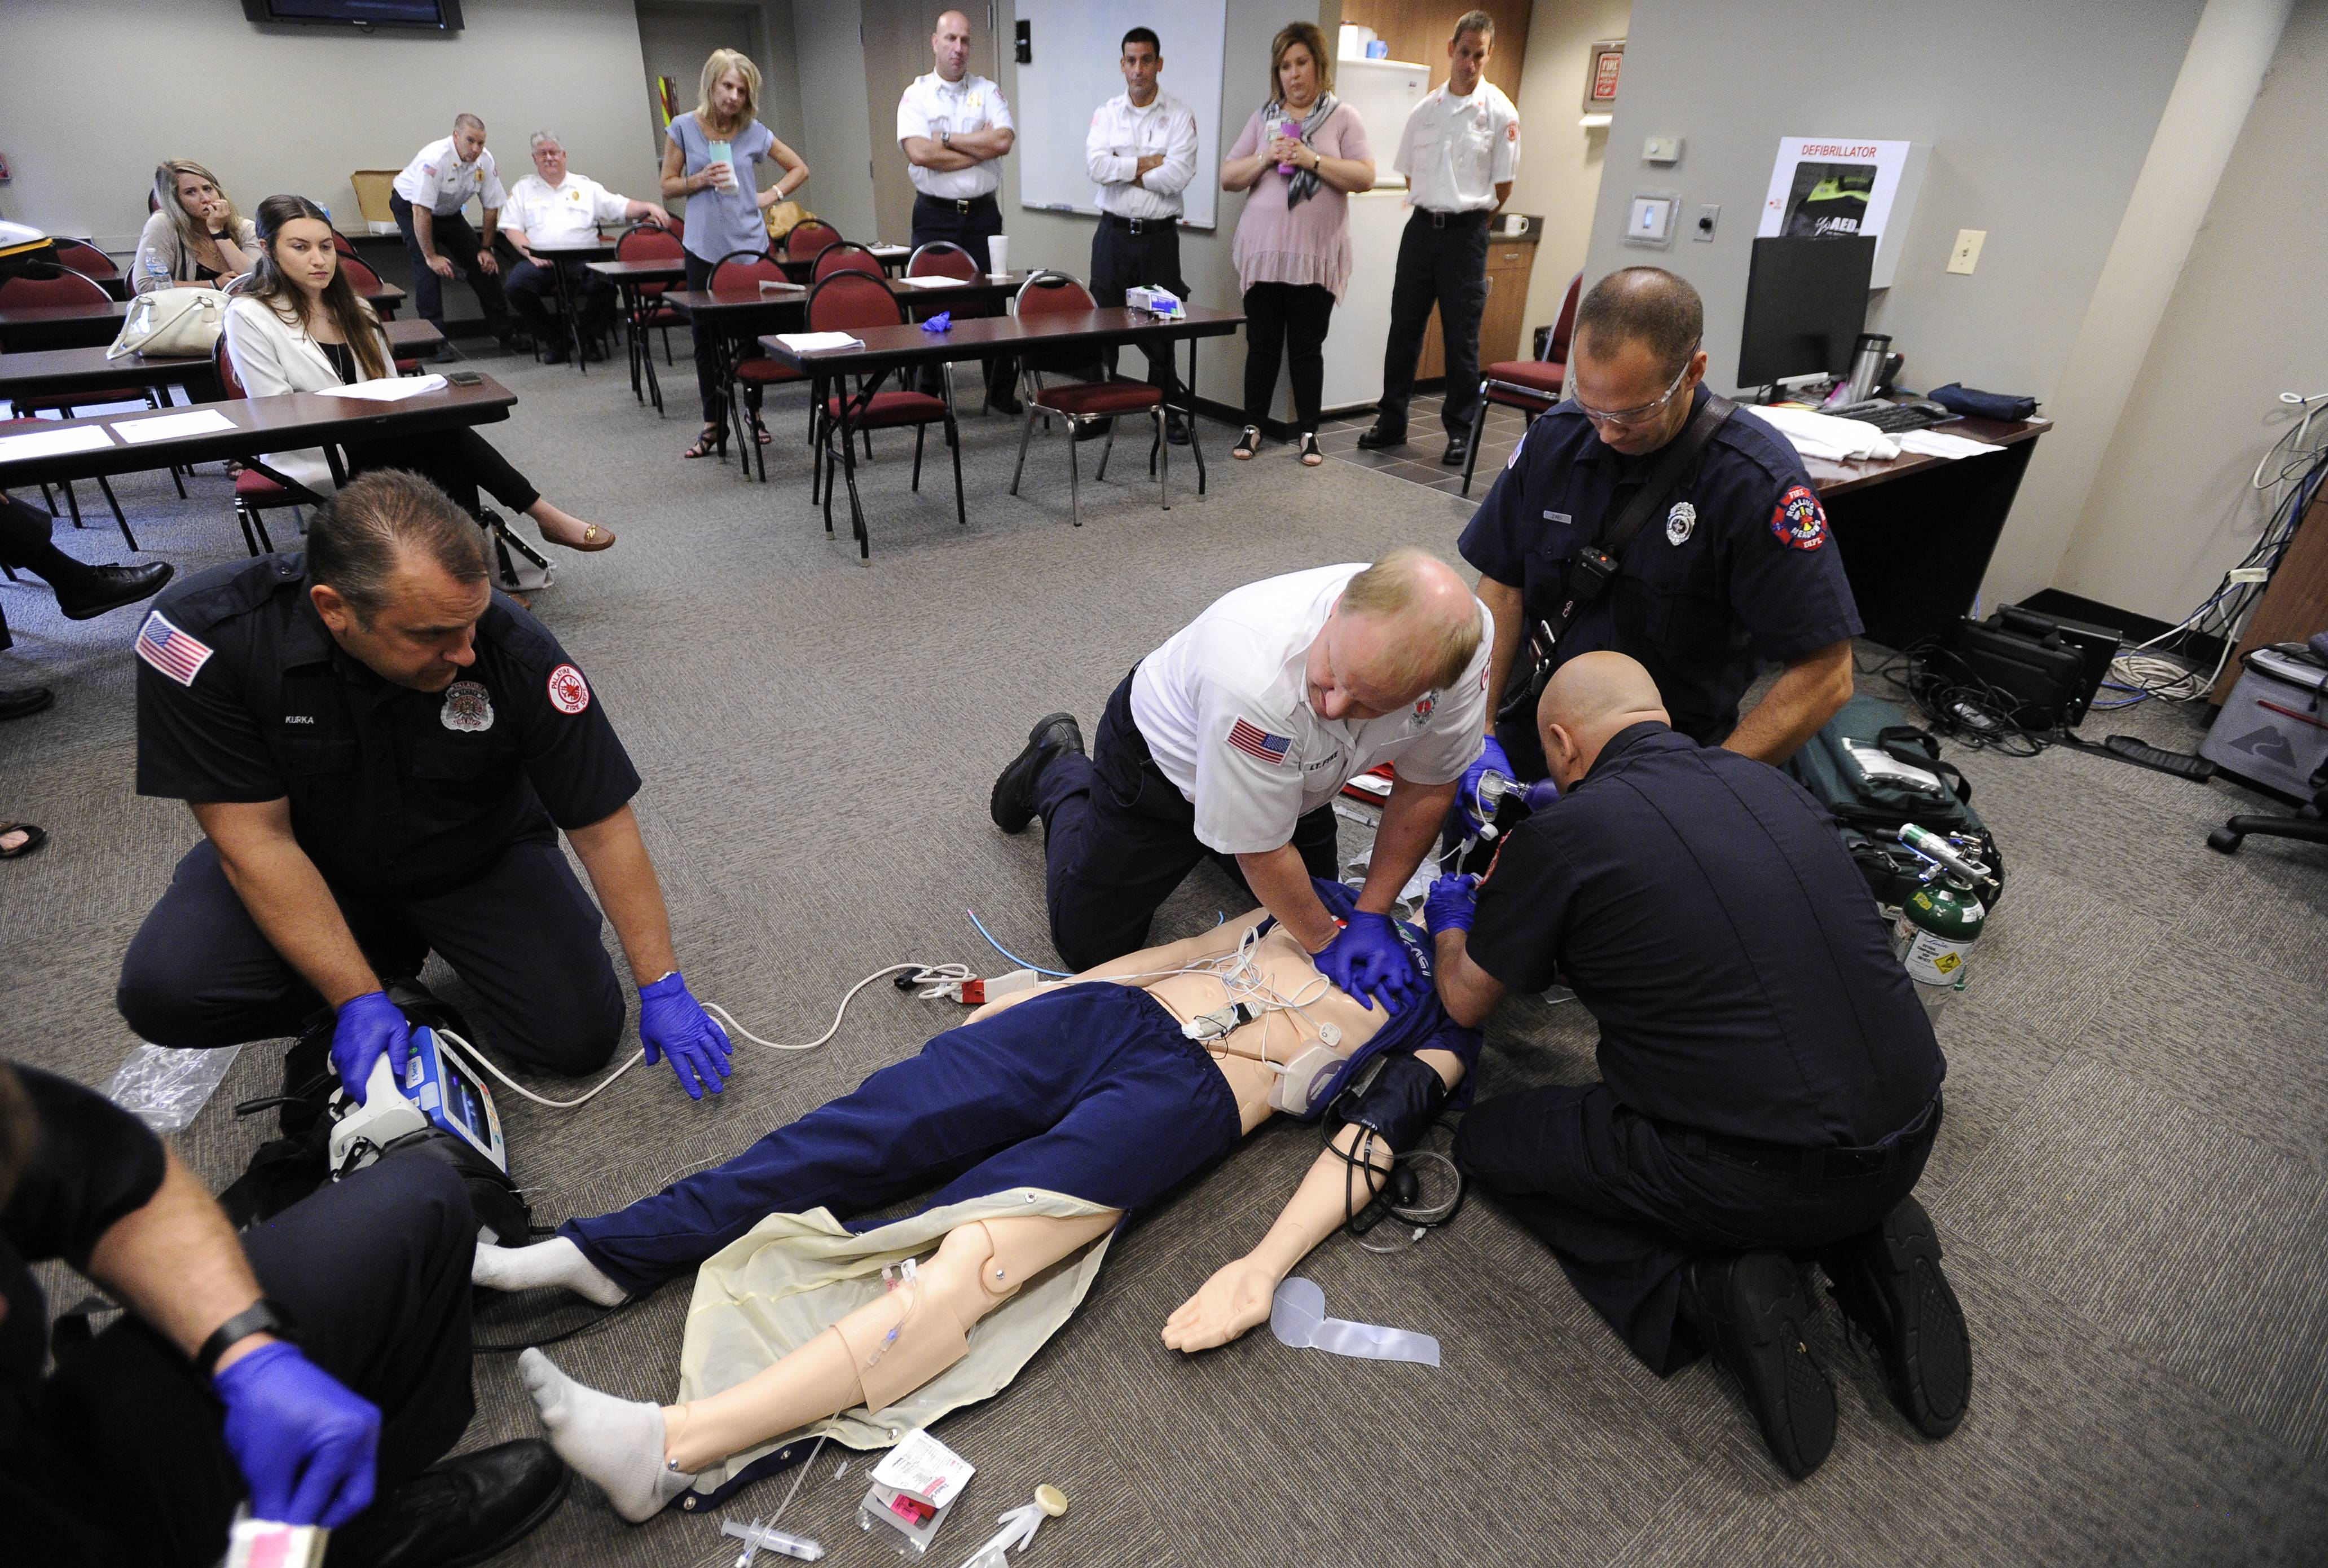 Palatine Rural Fire Protection District Lt. Roger Fyke performs chest compressions Tuesday as other first responders from Palatine and Rolling Meadows fire departments work on a new training manikin.